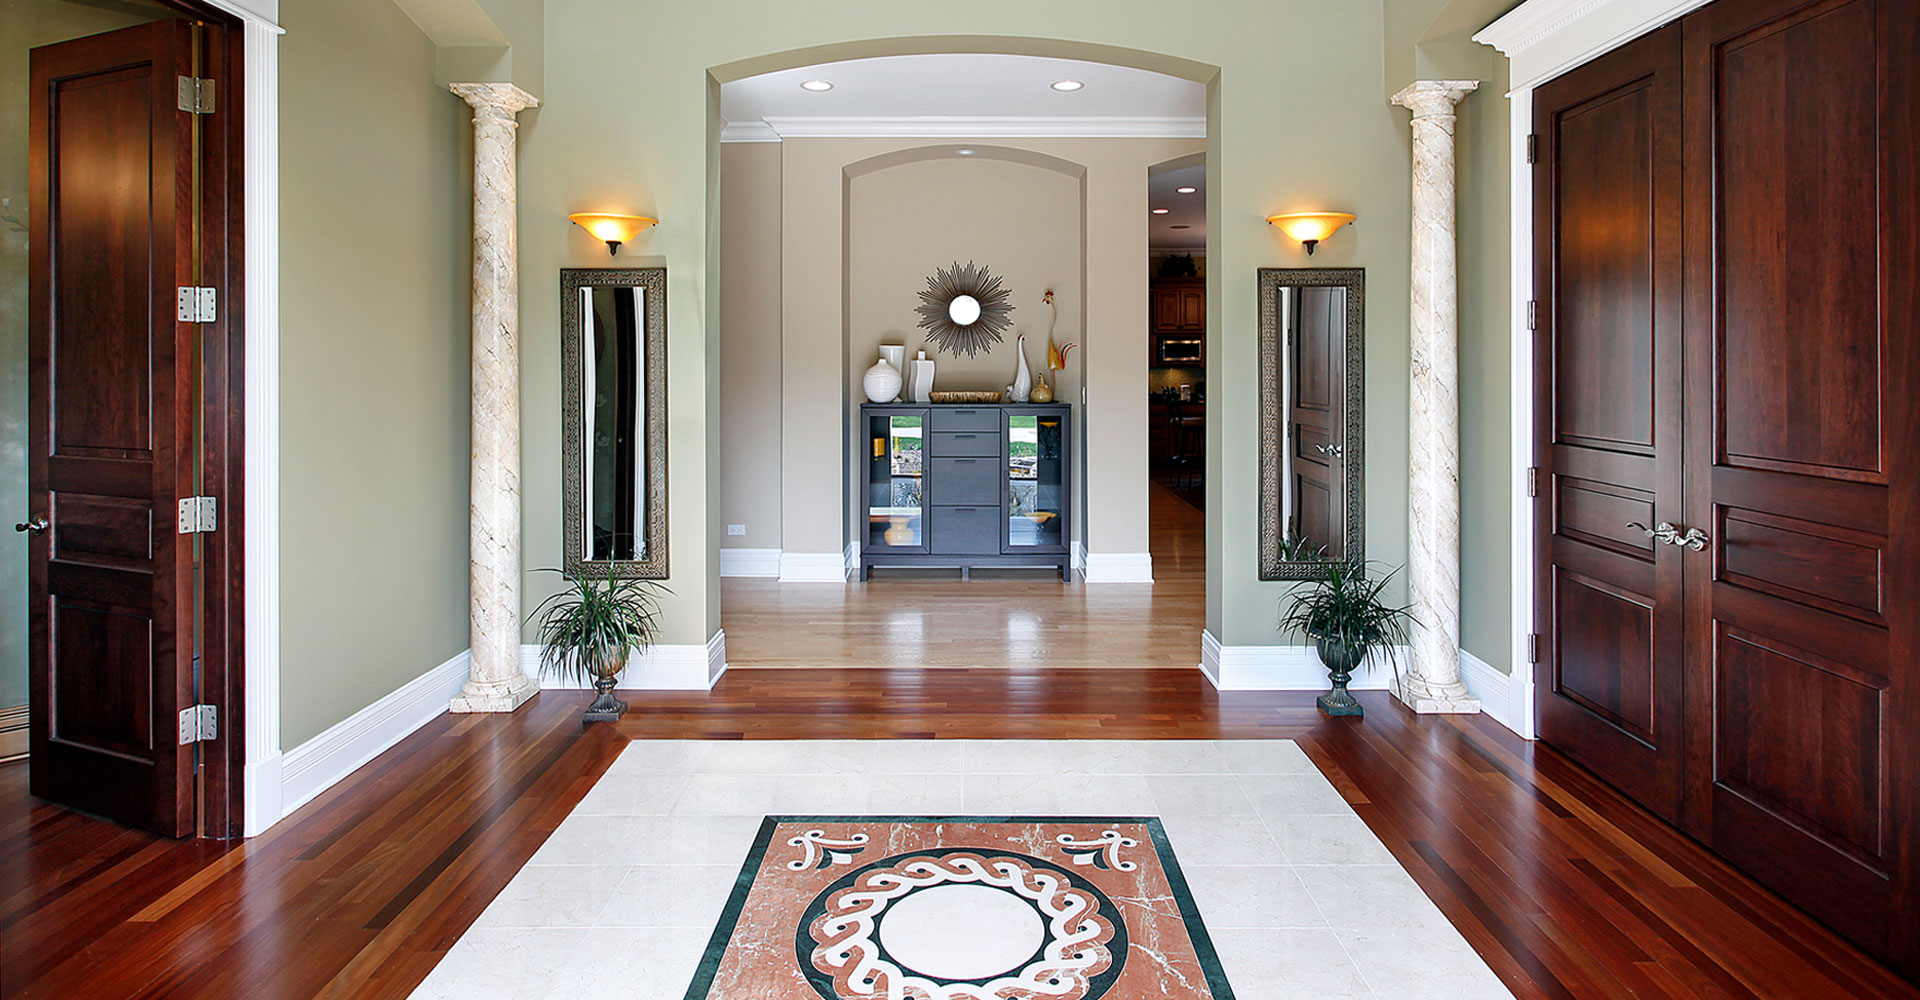 Carpet Cleaning Service In Berea Olmsted Columbia Station Brunswick Delta Carpet Cleaning